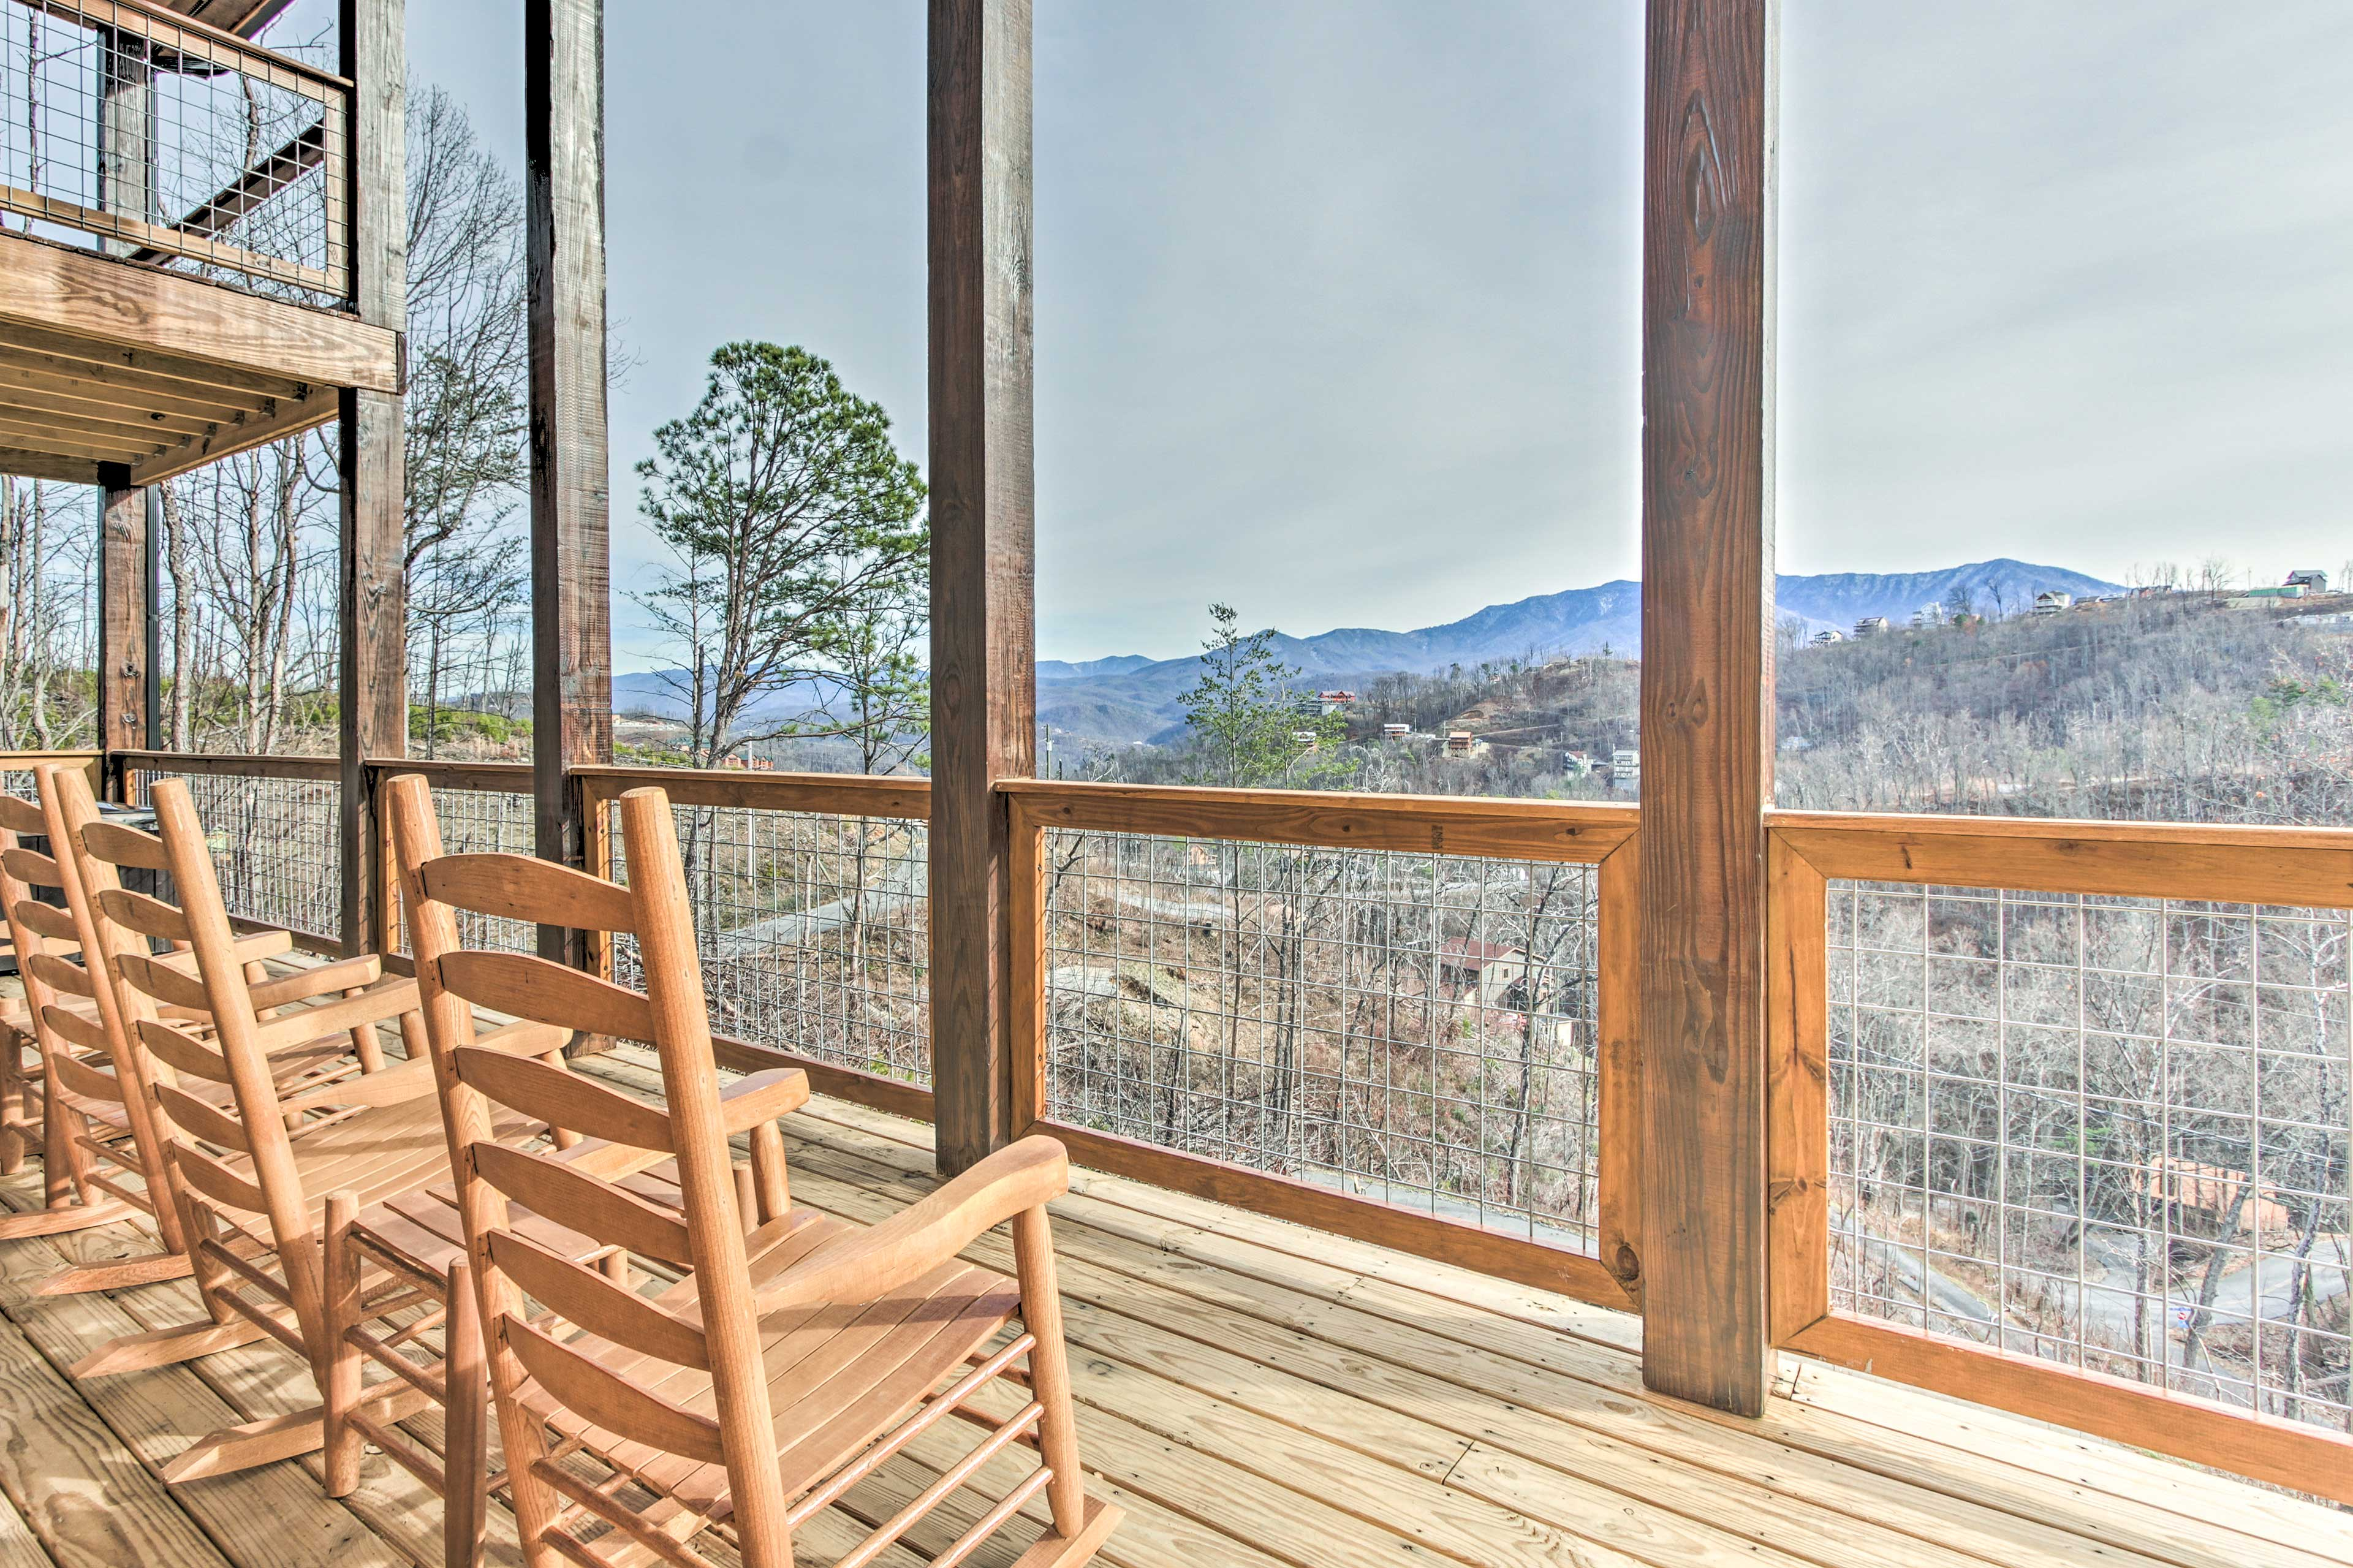 After a day of exploring the area, unwind on the deck with gorgeous views.